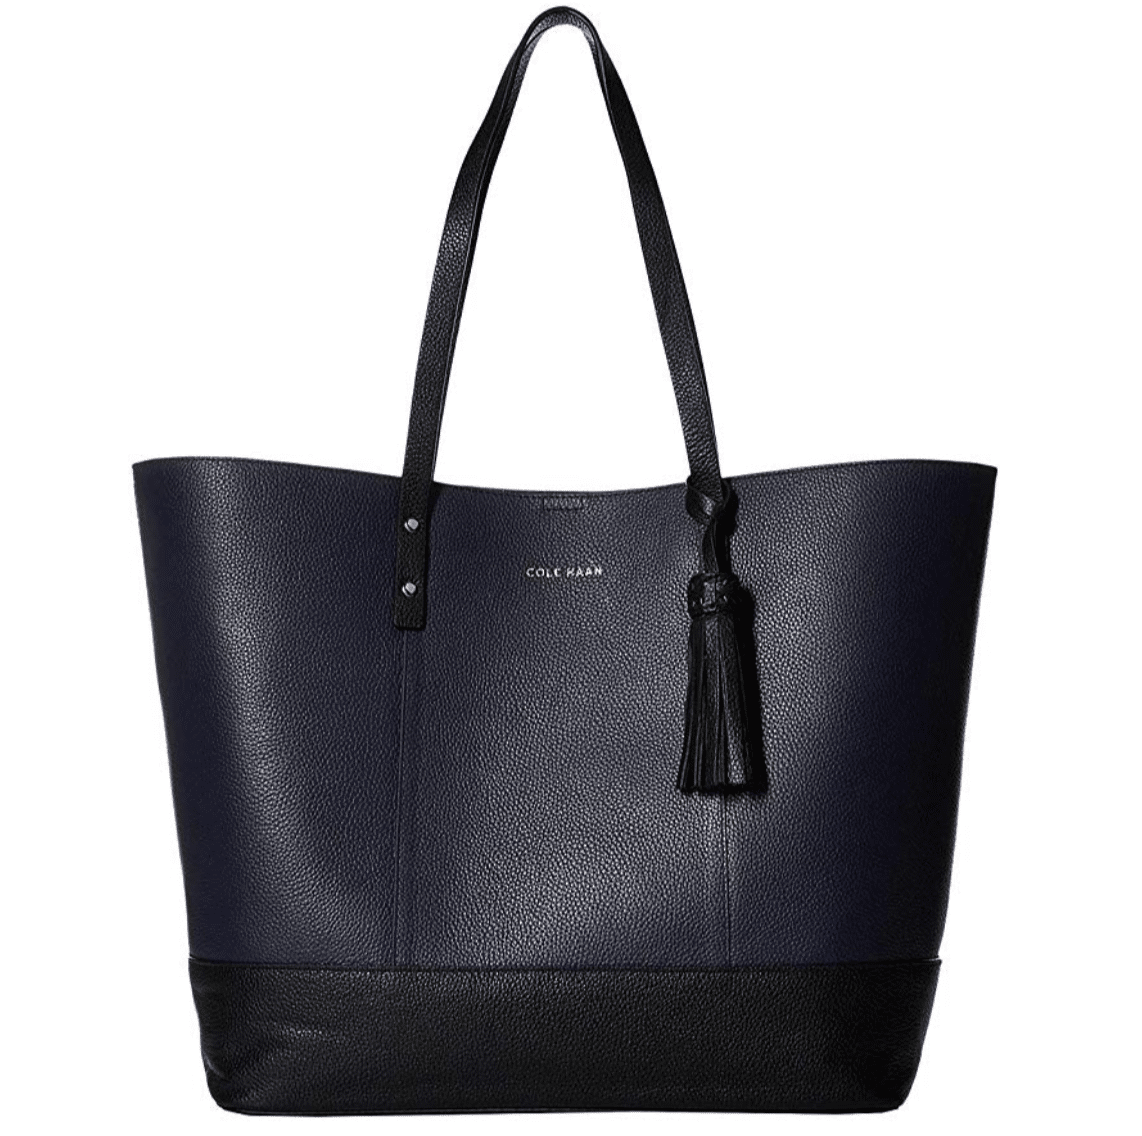 leather-anniversary-gifts-for-her-tote